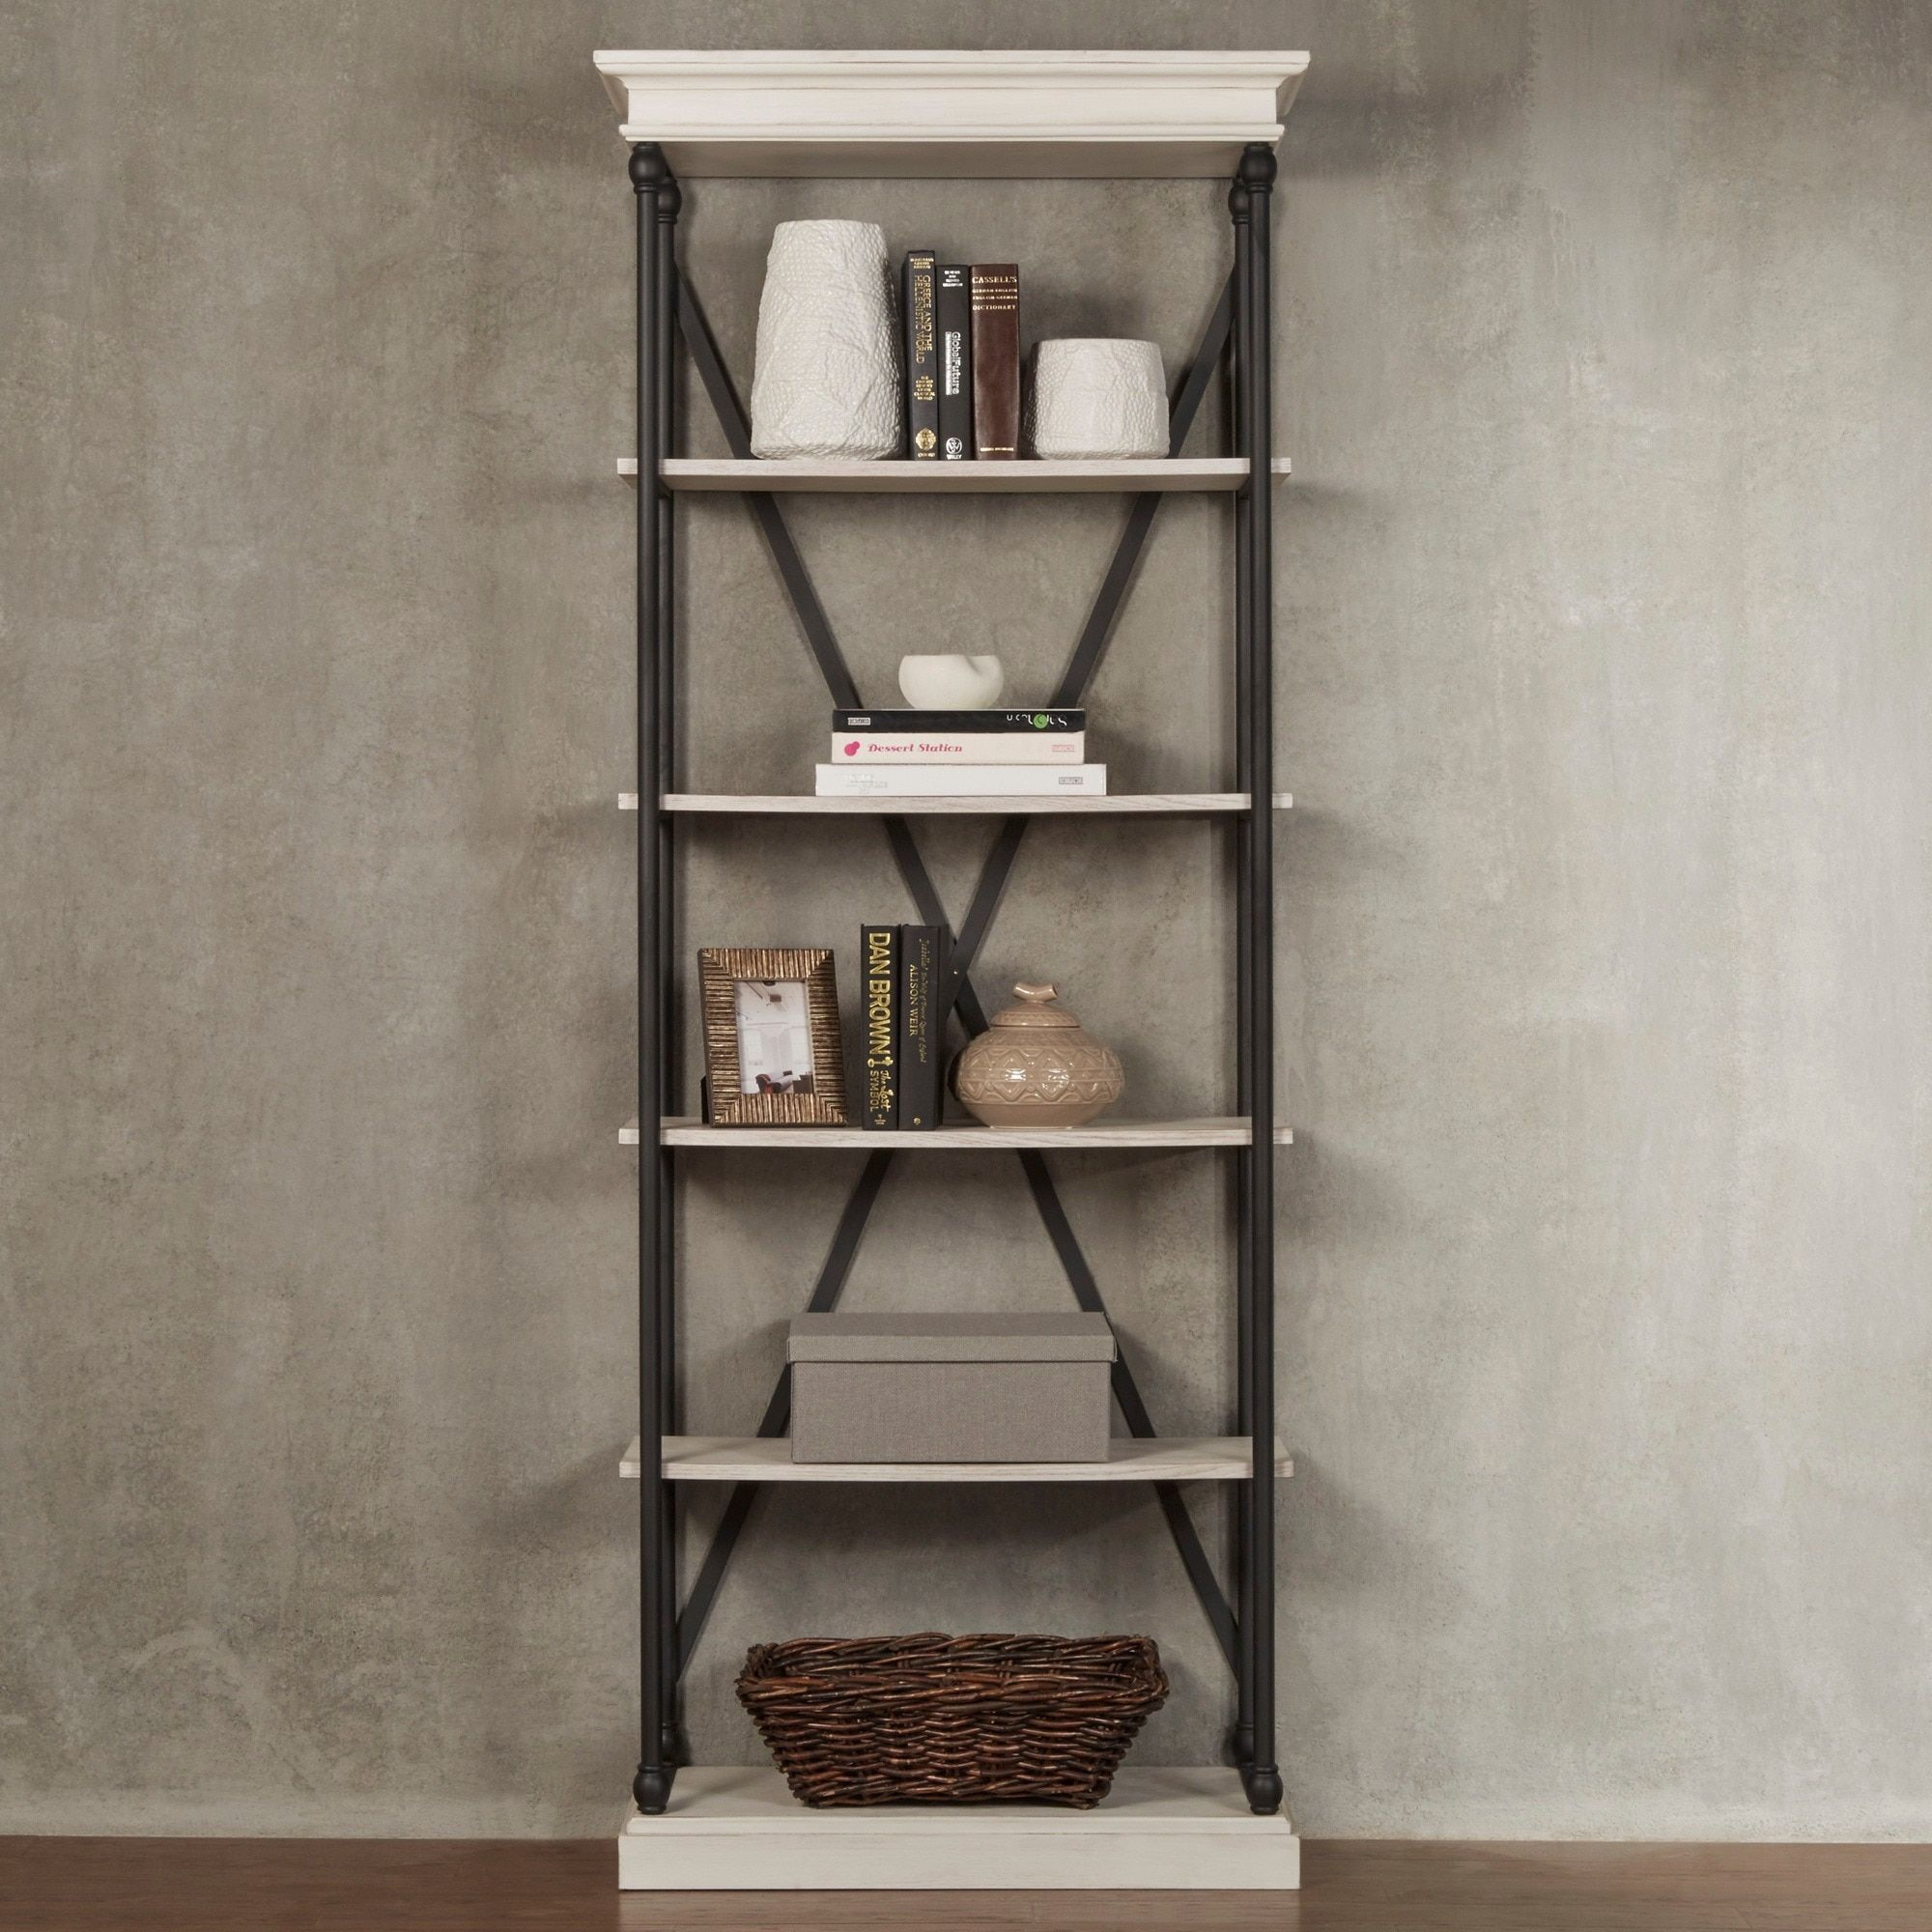 Barnstone Cornice Etagere Bookcase by iNSPIRE Q Artisan (Antique White  Finish)